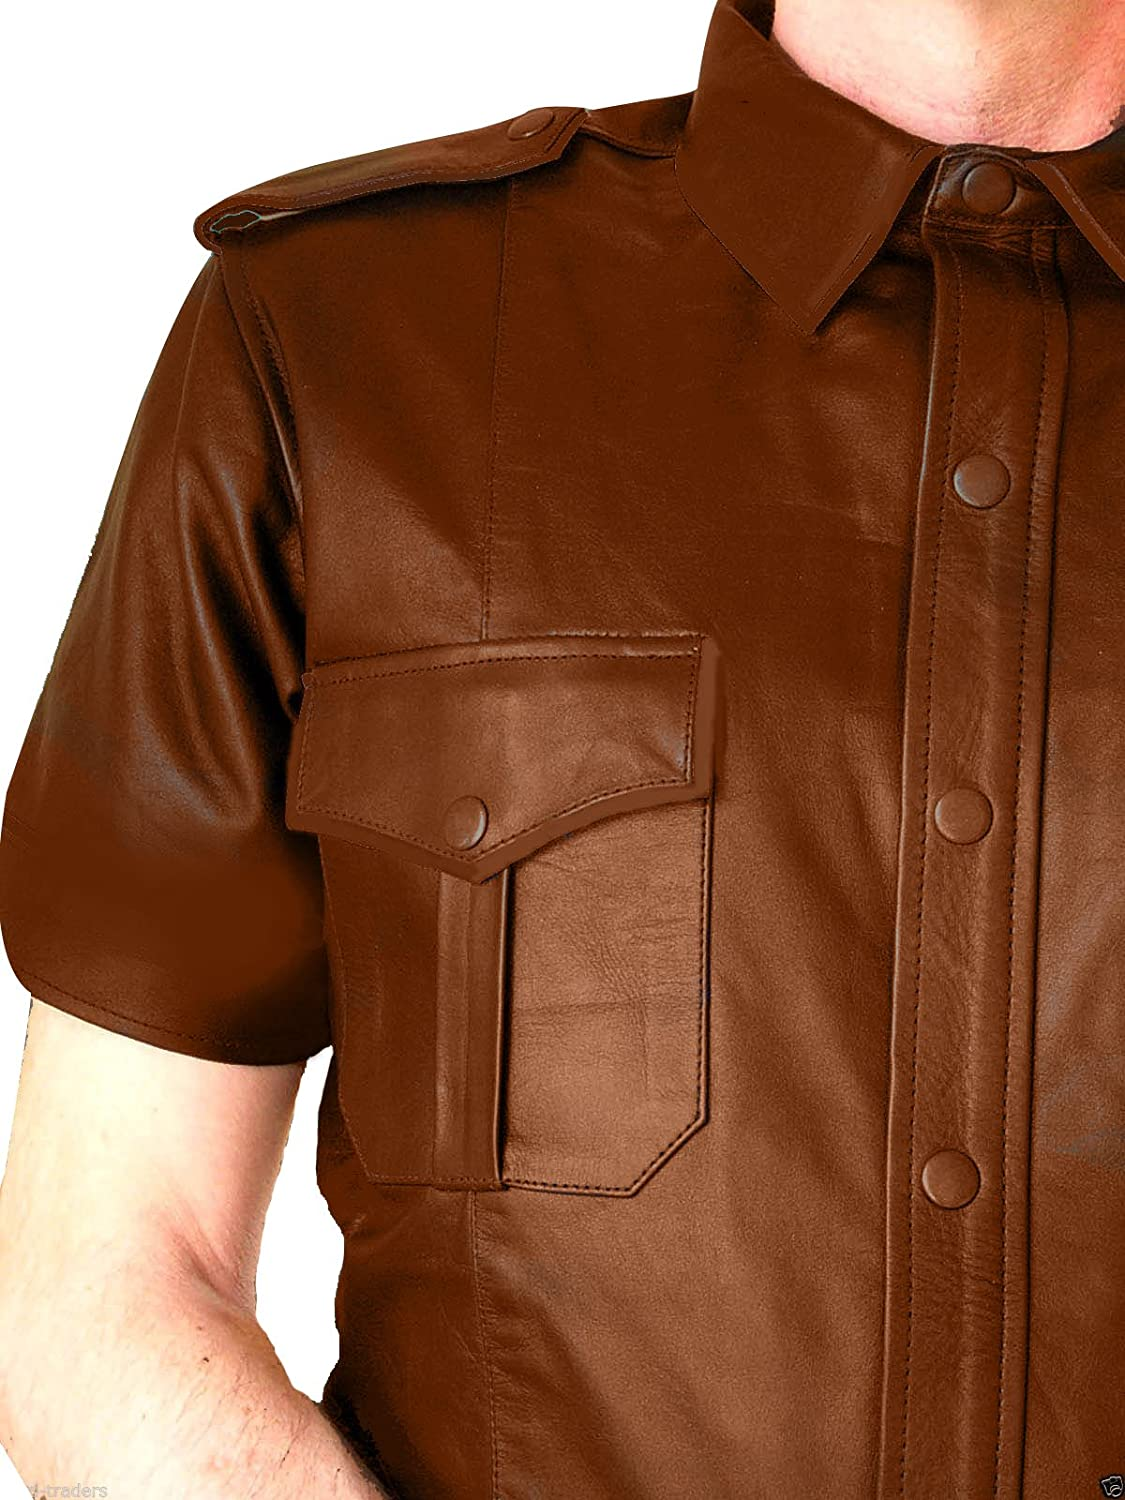 Leather Police Uniform Mens Very HOT Gay Genuine Real Shirt BLUF